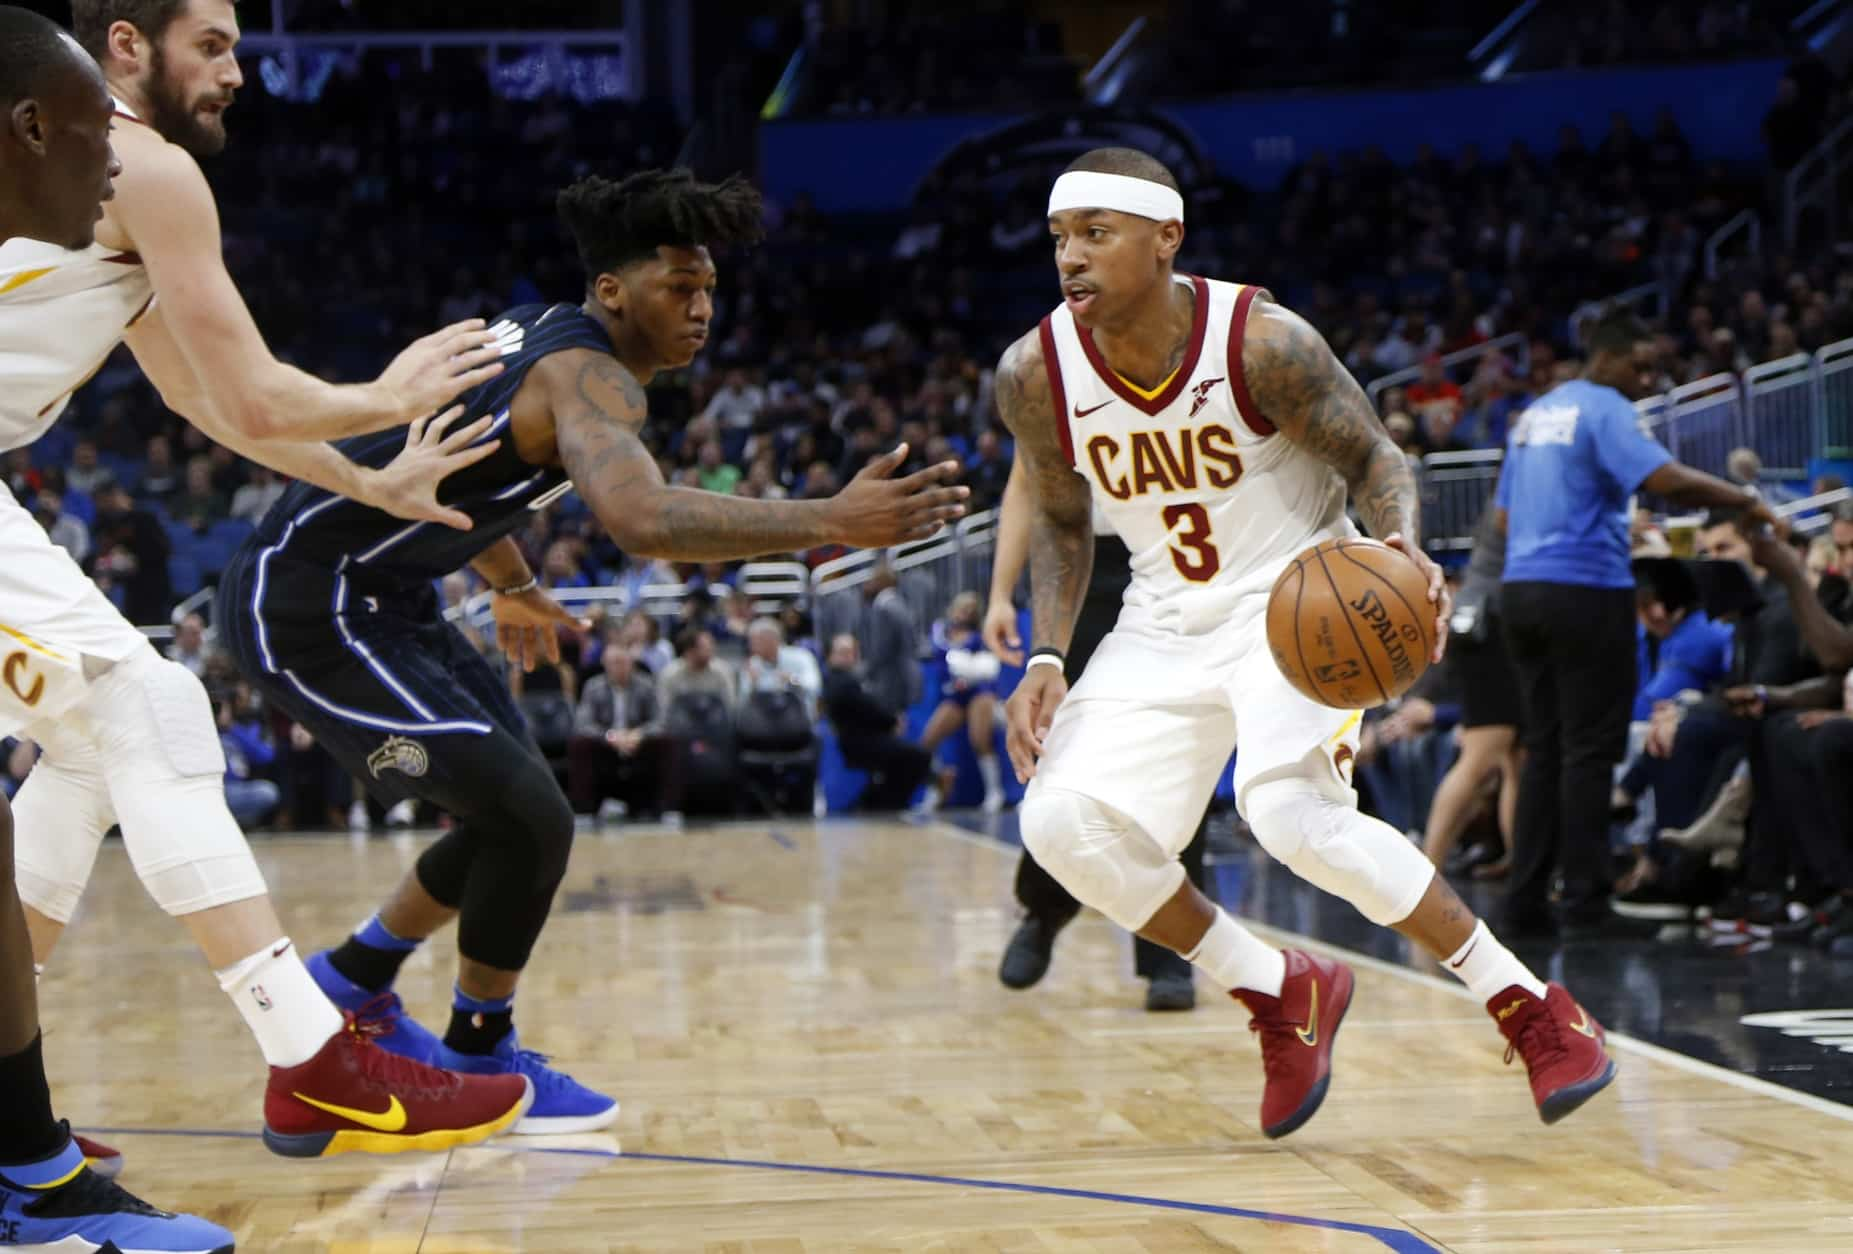 e73fdc5376c Isaiah Thomas  likes  video of Kyrie Irving shooting over LeBron James